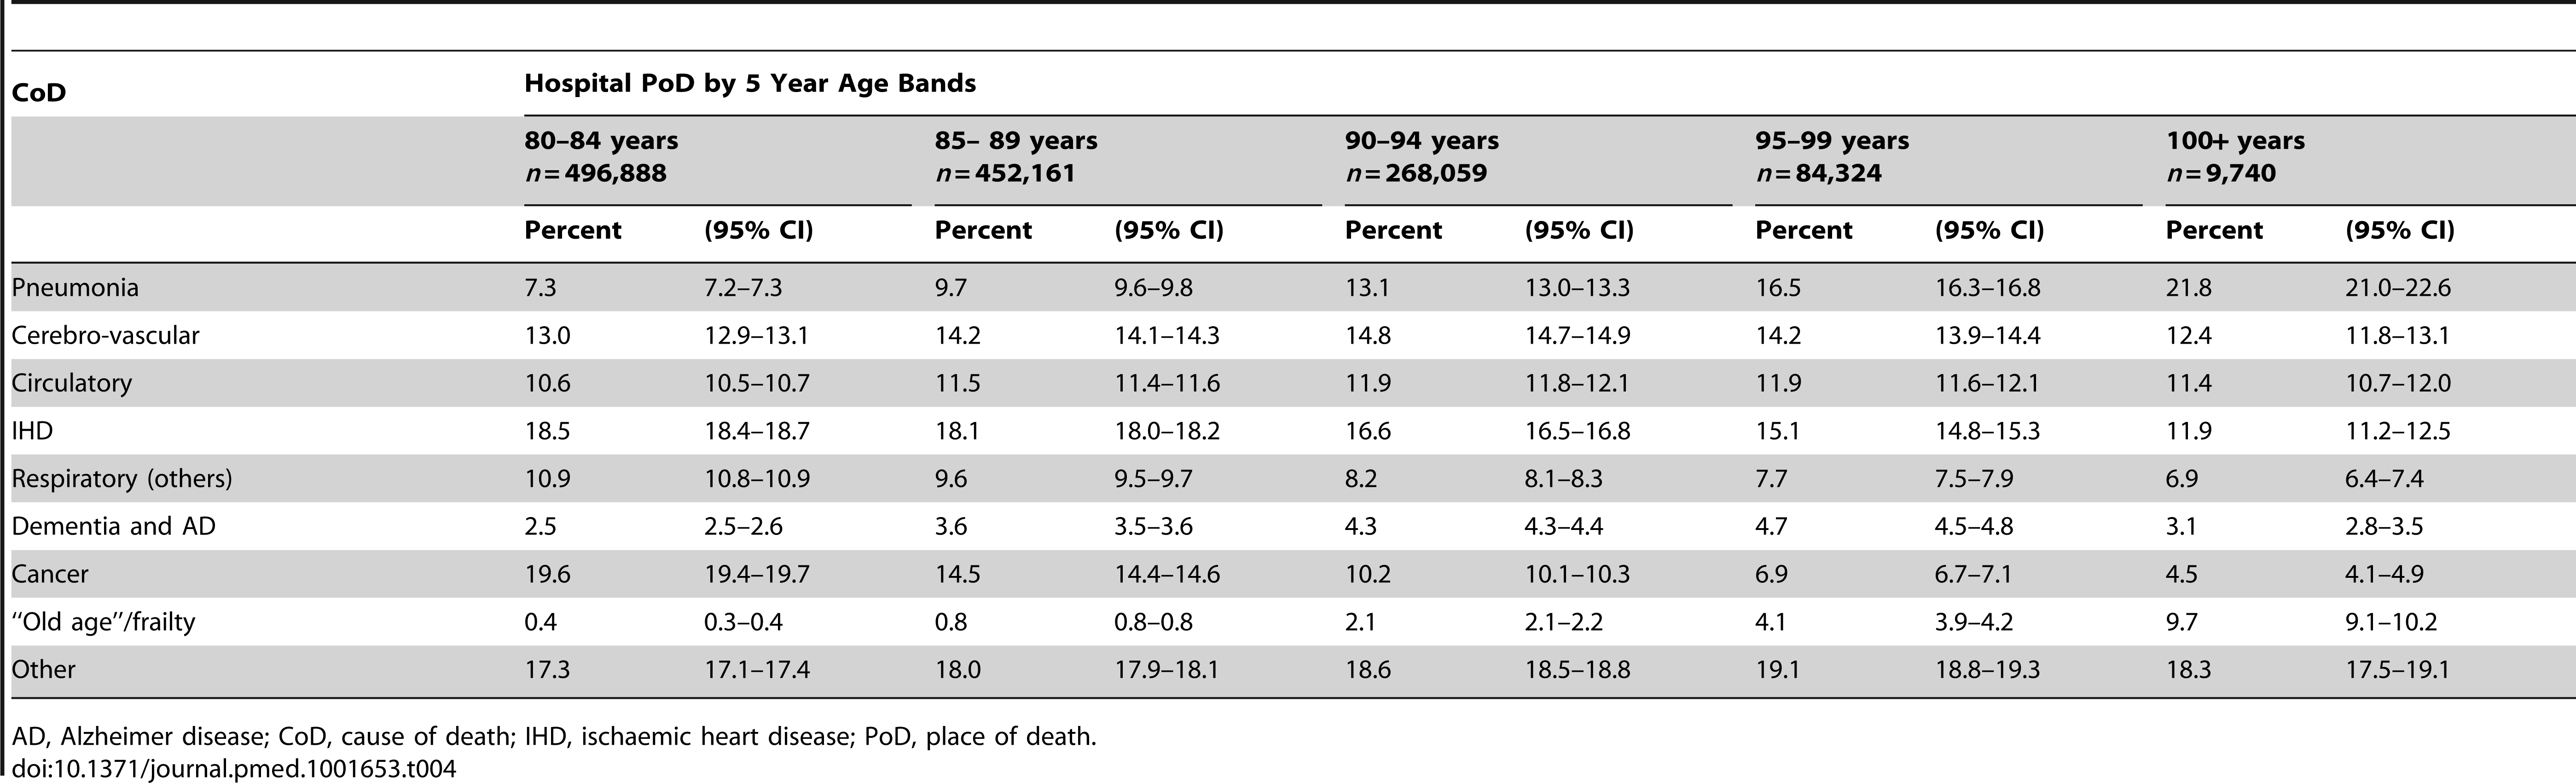 Cause of death by age bands and hospital as place of death.